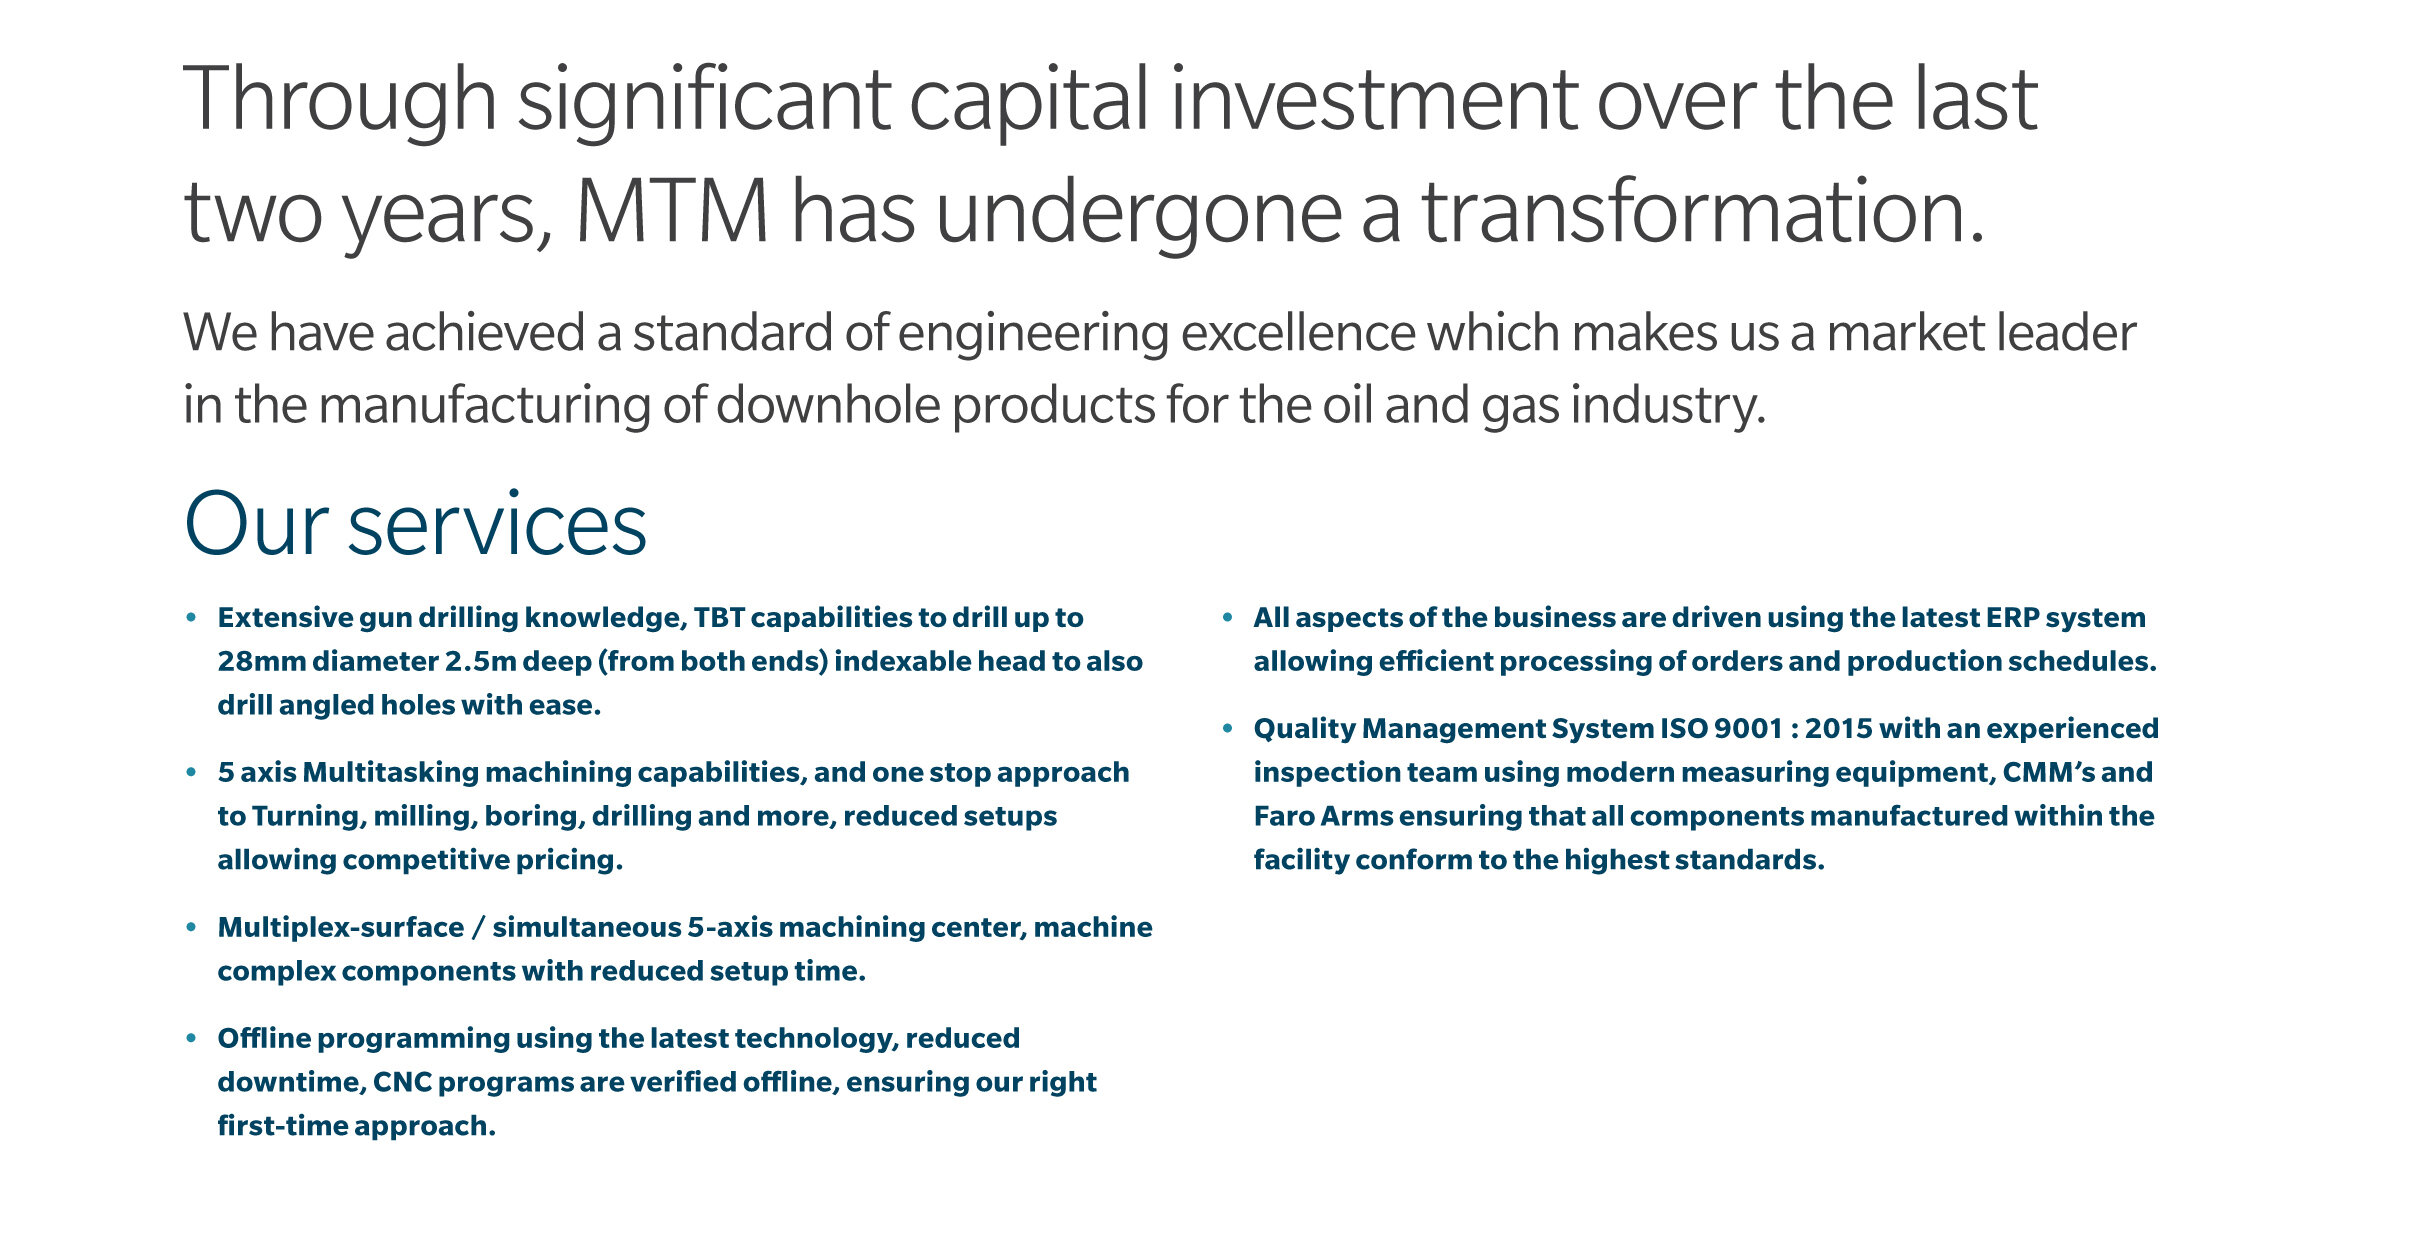 Through signifi cant capital investment over the last two years, MTM has undergone a transformation.  We have achieved a standard of engineering excellence which makes us a market leader in the manufacturing of downhole products for the oil and gas industry.  • Extensive gun drilling knowledge, TBT capabilities to drill up to 28mm diameter 2.5m deep (from both ends) indexable head to also drill angled holes with ease.  • 5 axis Multitasking machining capabilities, and one stop approach to Turning, milling, boring, drilling and more, reduced setups allowing competitive pricing.  • Multiplex-surface / simultaneous 5-axis machining center, machine complex components with reduced setup time.  • Offline programming using the latest technology, reduced downtime, CNC programs are verifi ed o ine, ensuring our right first-time approach.  • All aspects of the business are driven using the latest ERP system allowing e cient processing of orders and production schedules.  • Quality Management System ISO 9001 : 2015 with an experienced inspection team using modern measuring equipment, CMM's and Faro Arms ensuring that all components manufactured within the facility conform to the highest standards.